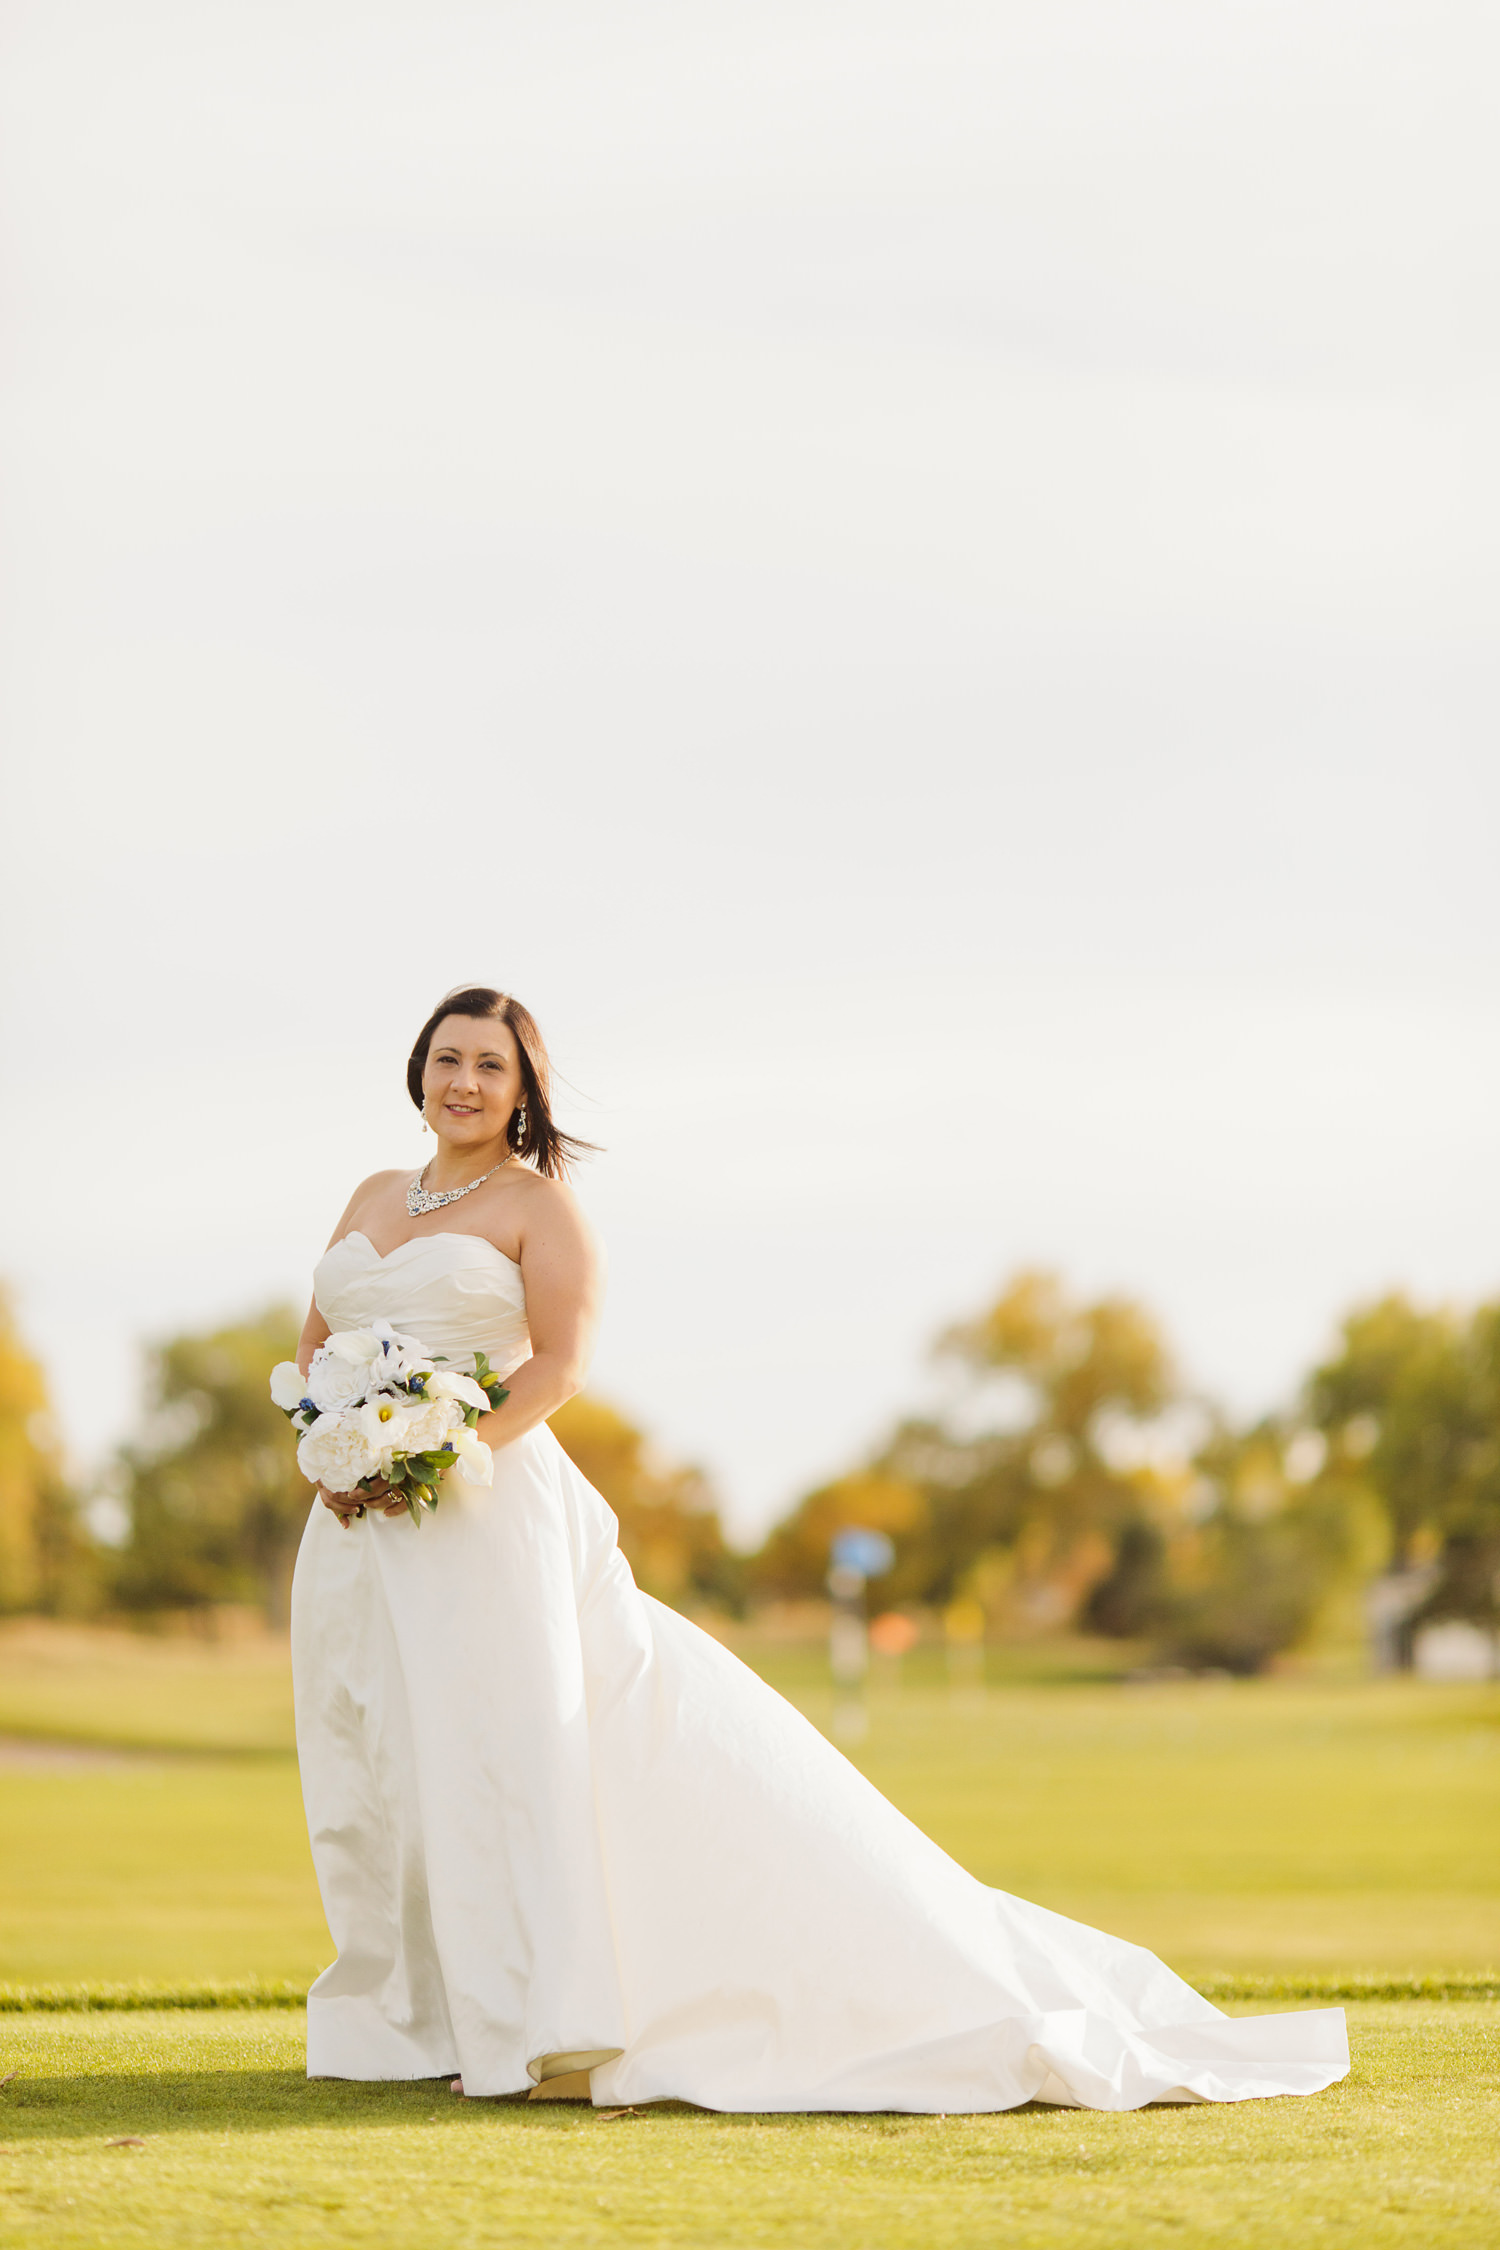 bride relaxes on golfing fairway during a Valley Contry Club wedding in Centennial, Colorado